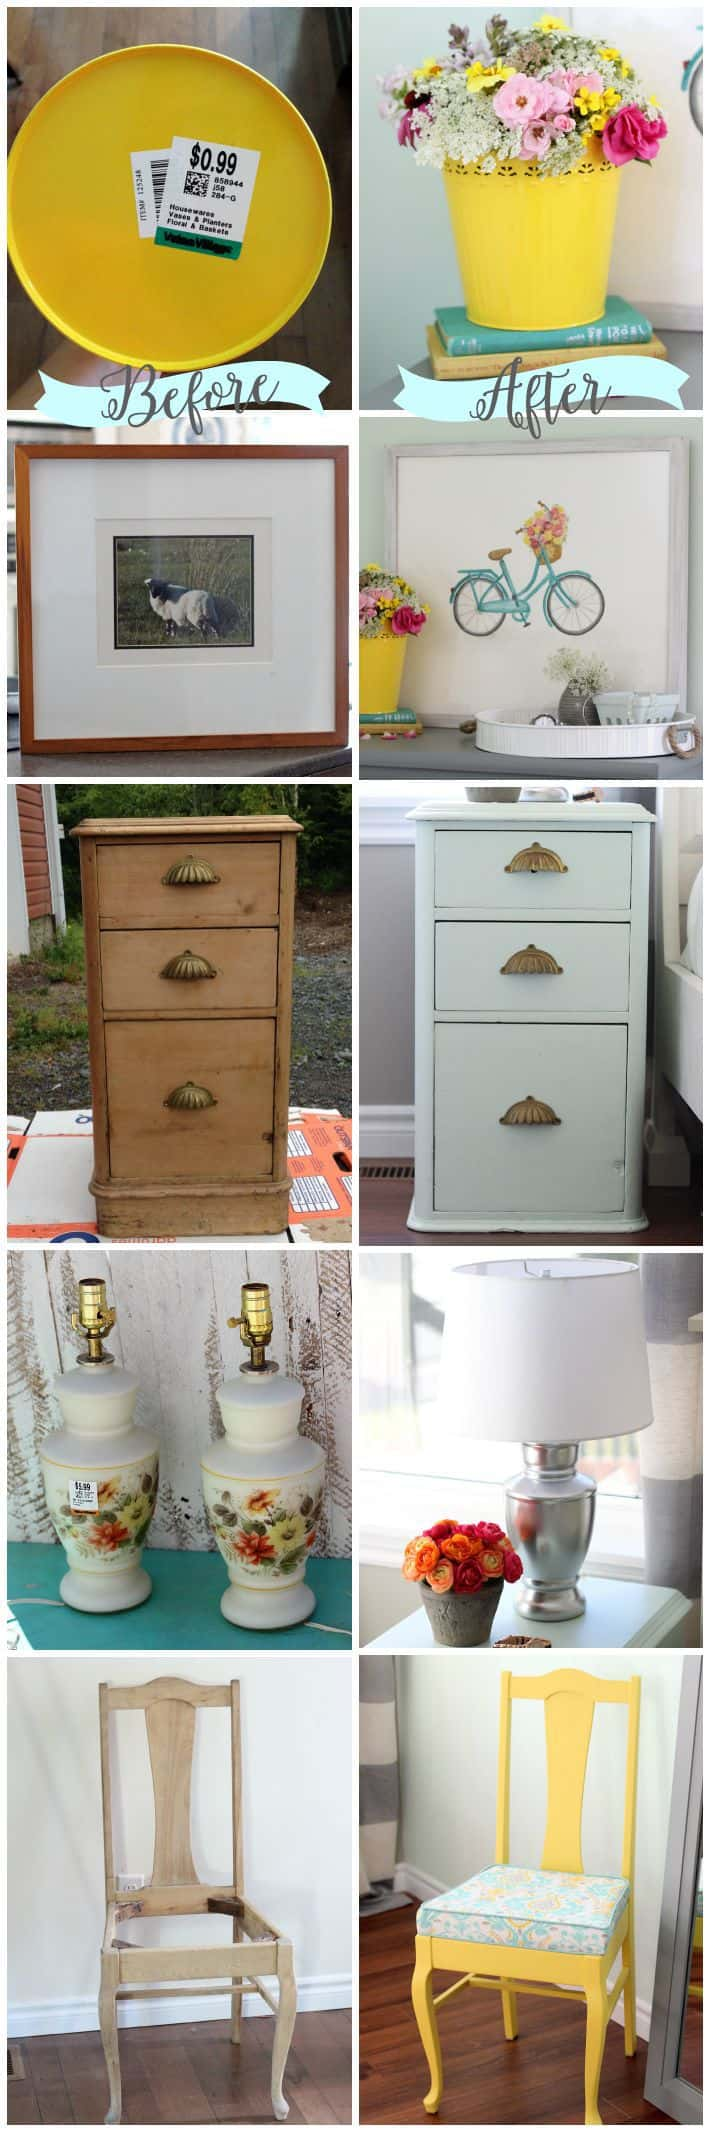 Before and After thrift store finds- the power of paint!